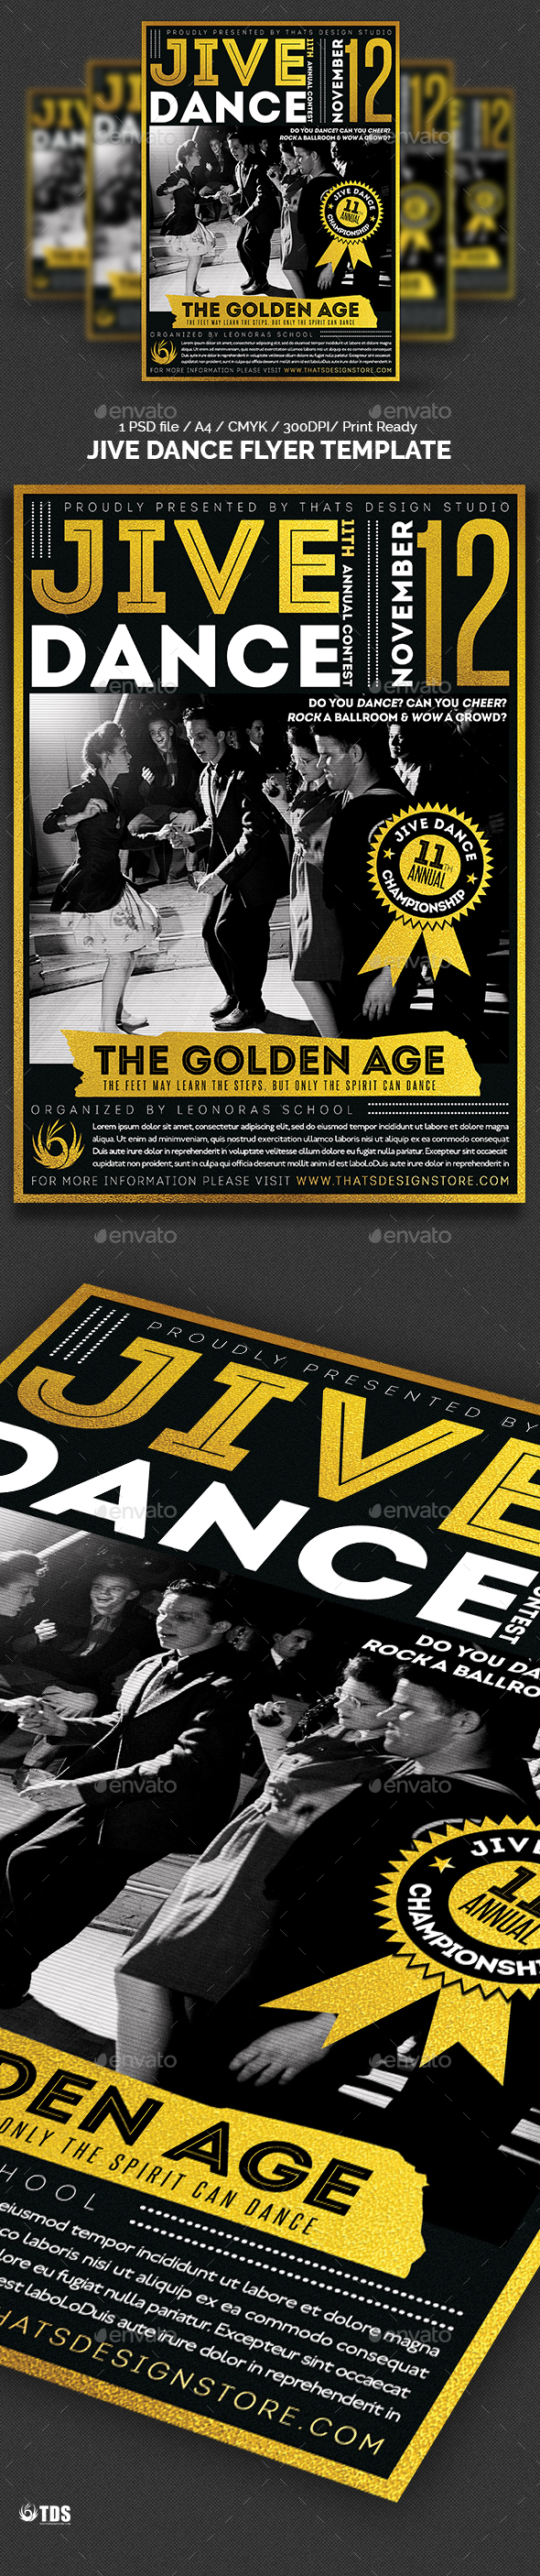 Jive Dance Flyer Template - Concerts Events